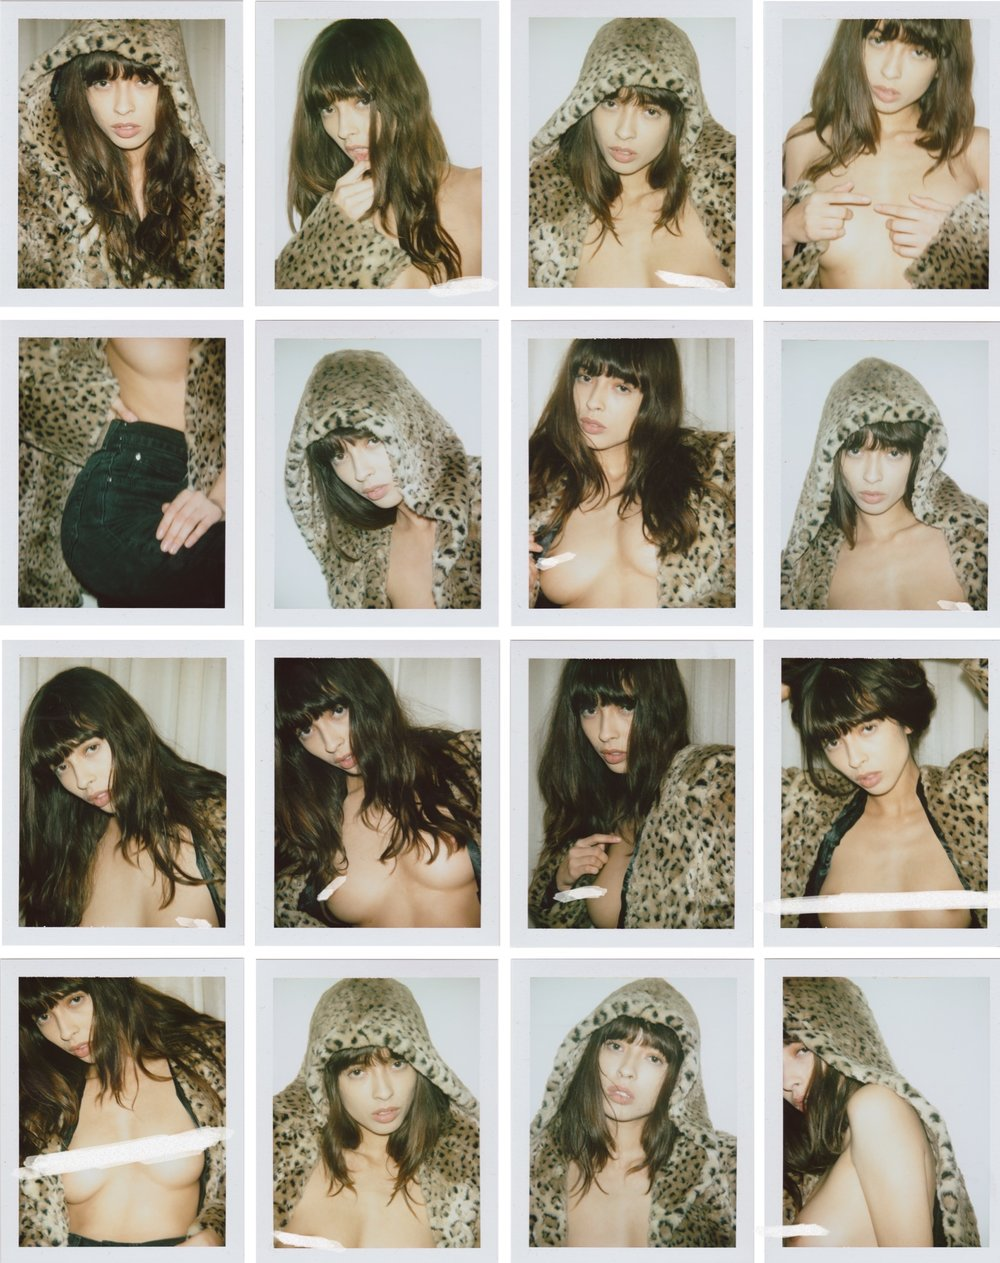 steph_by_arturo_polaroid_05.JPG